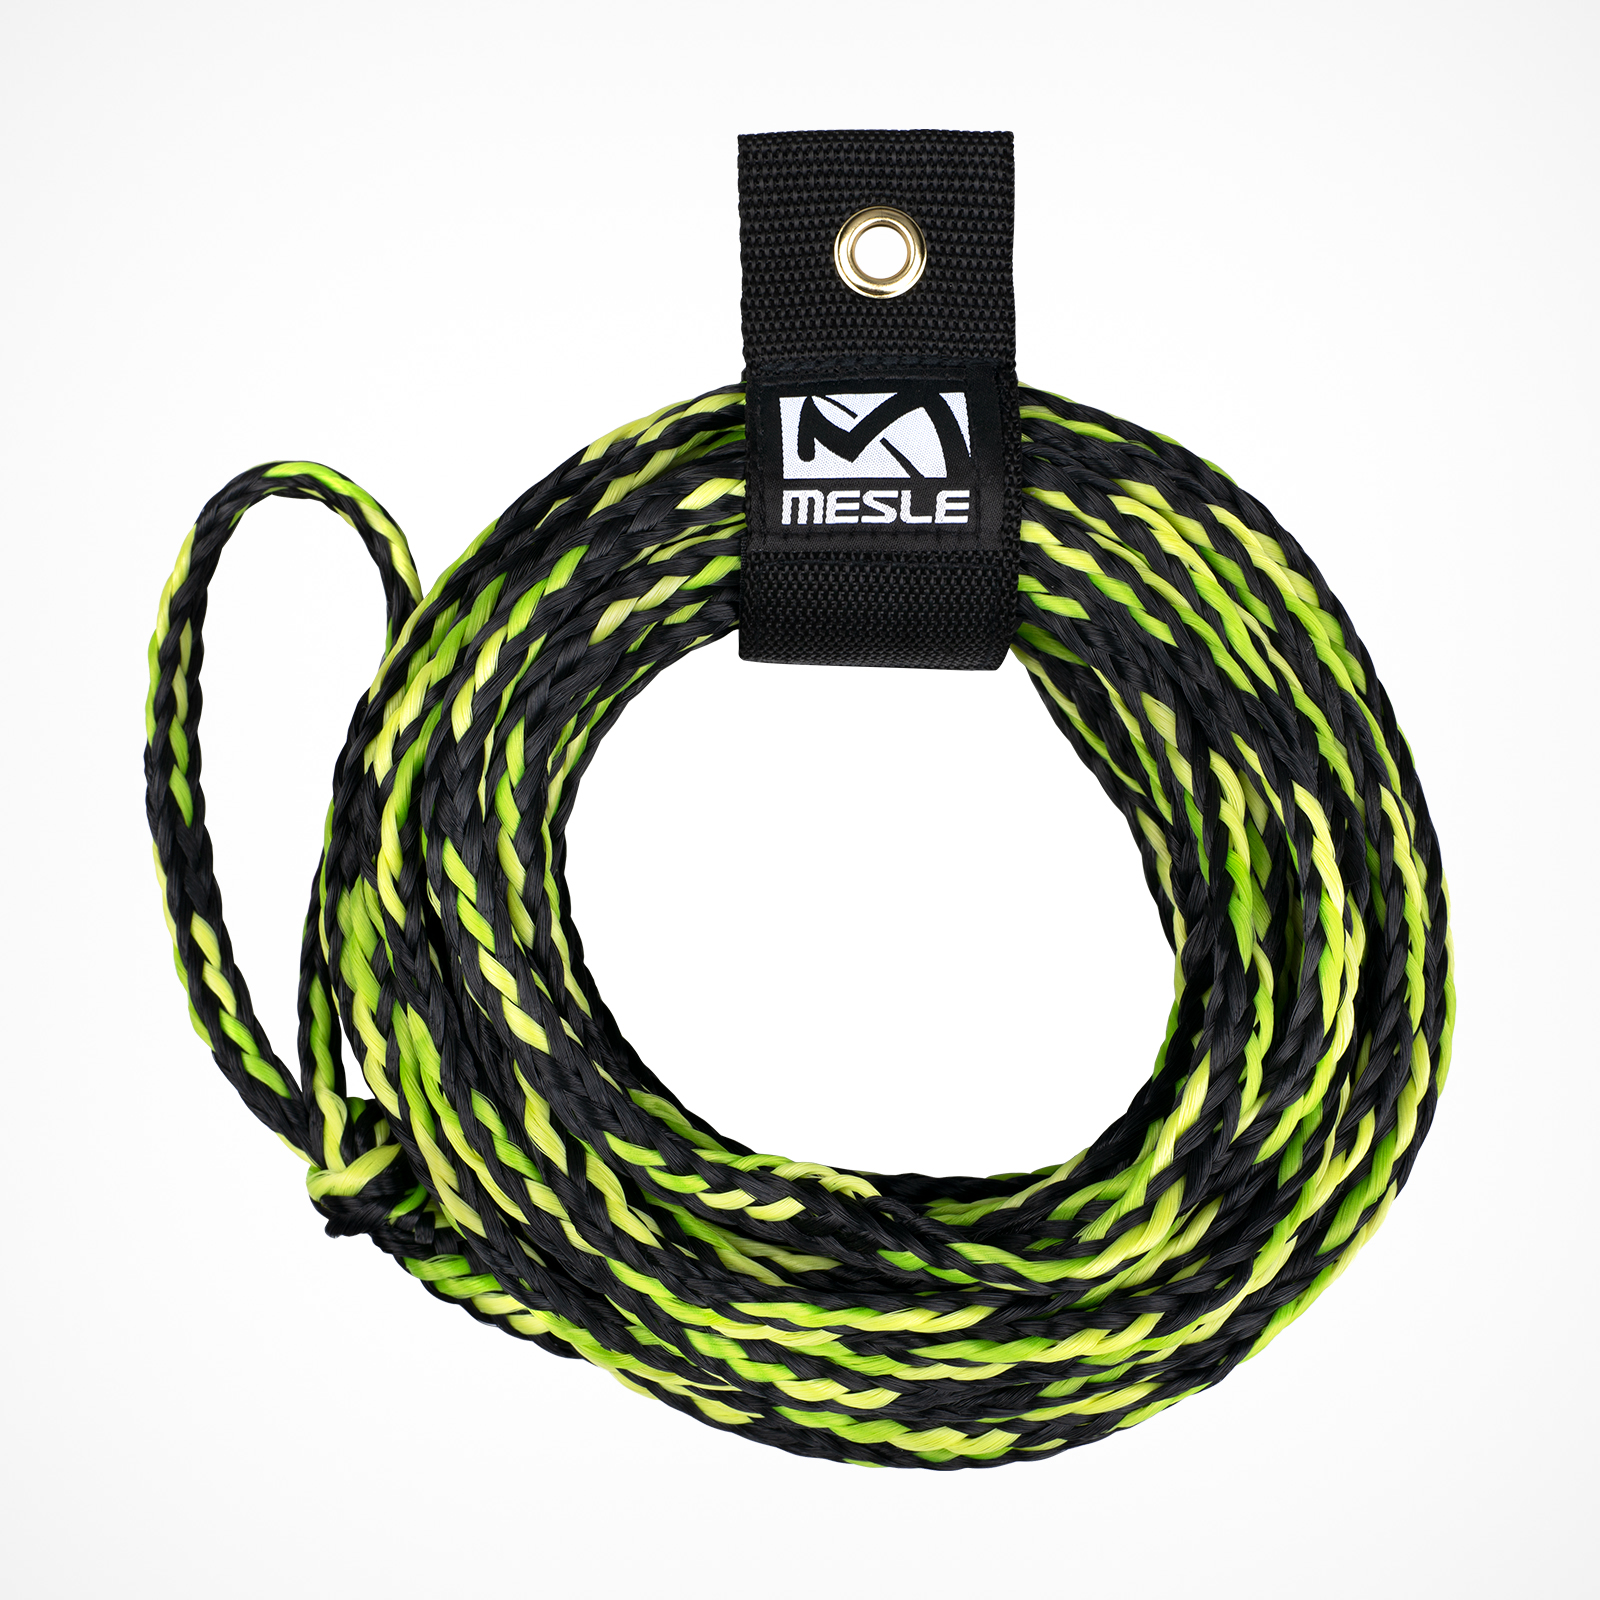 MESLE Schleppleine for 2 Persons towable Tubes, black-lime, inclusive Rope Keeper